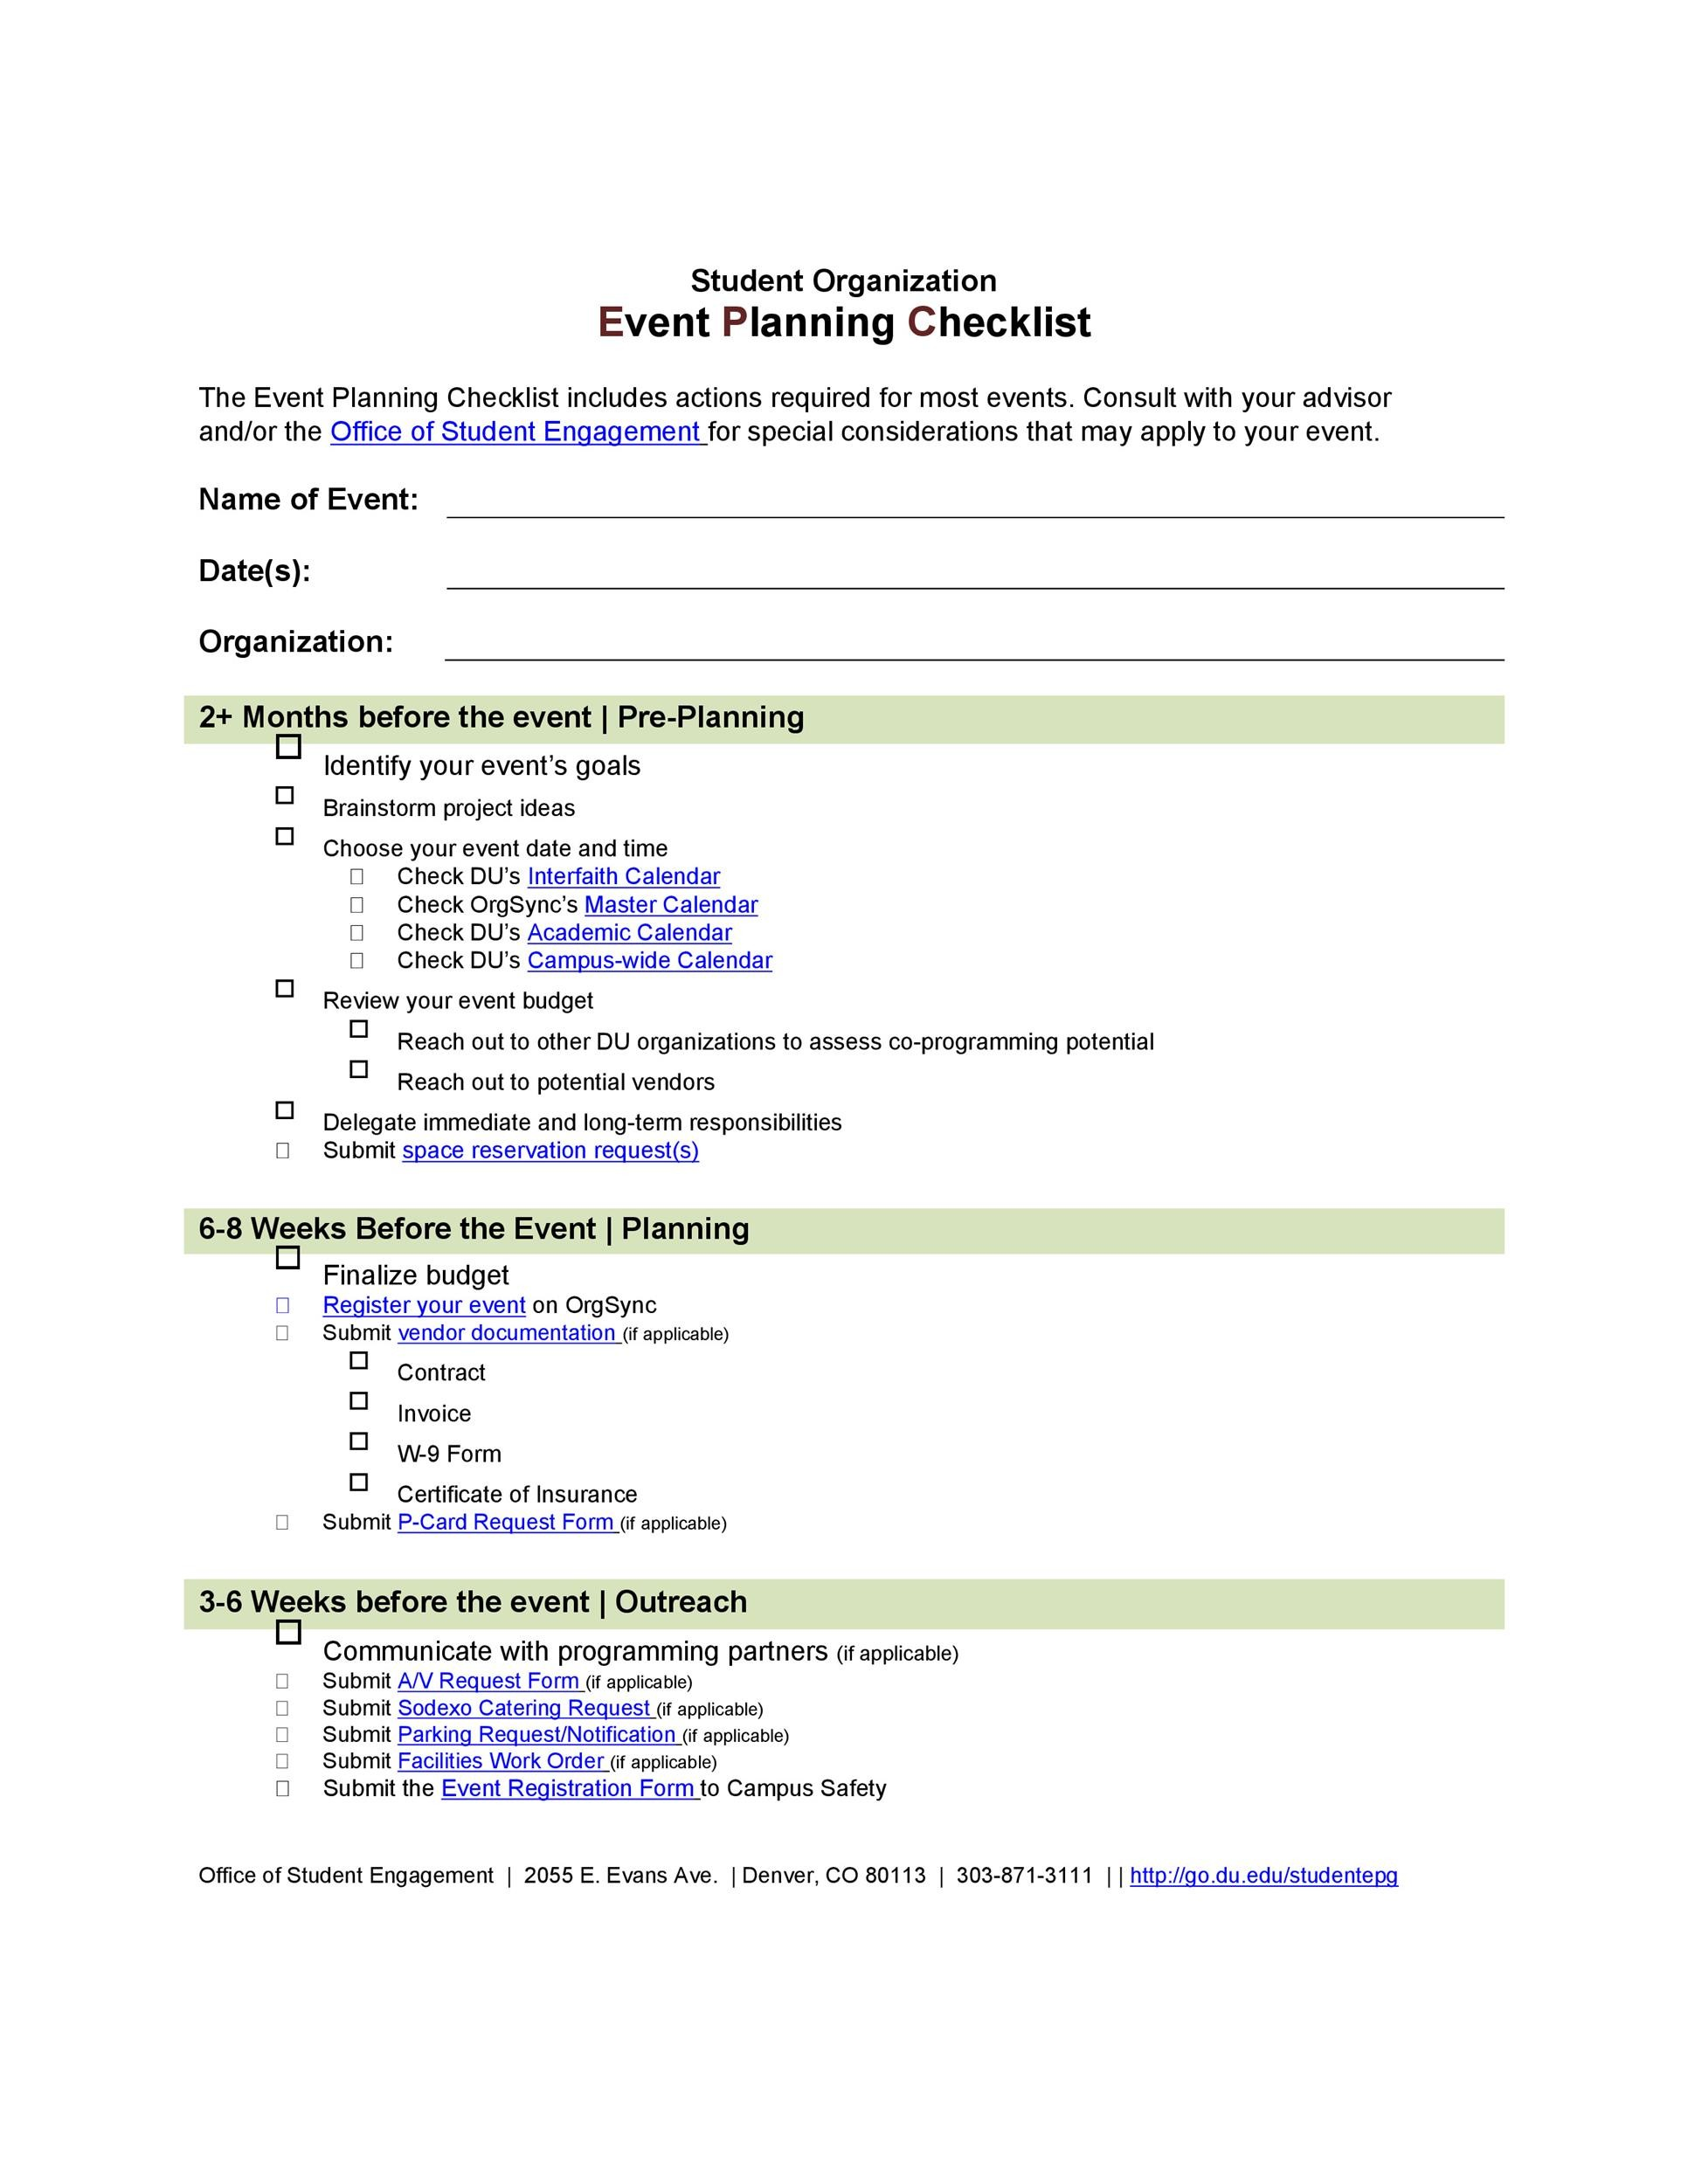 Professional Event Planning Checklist Templates  Template Lab